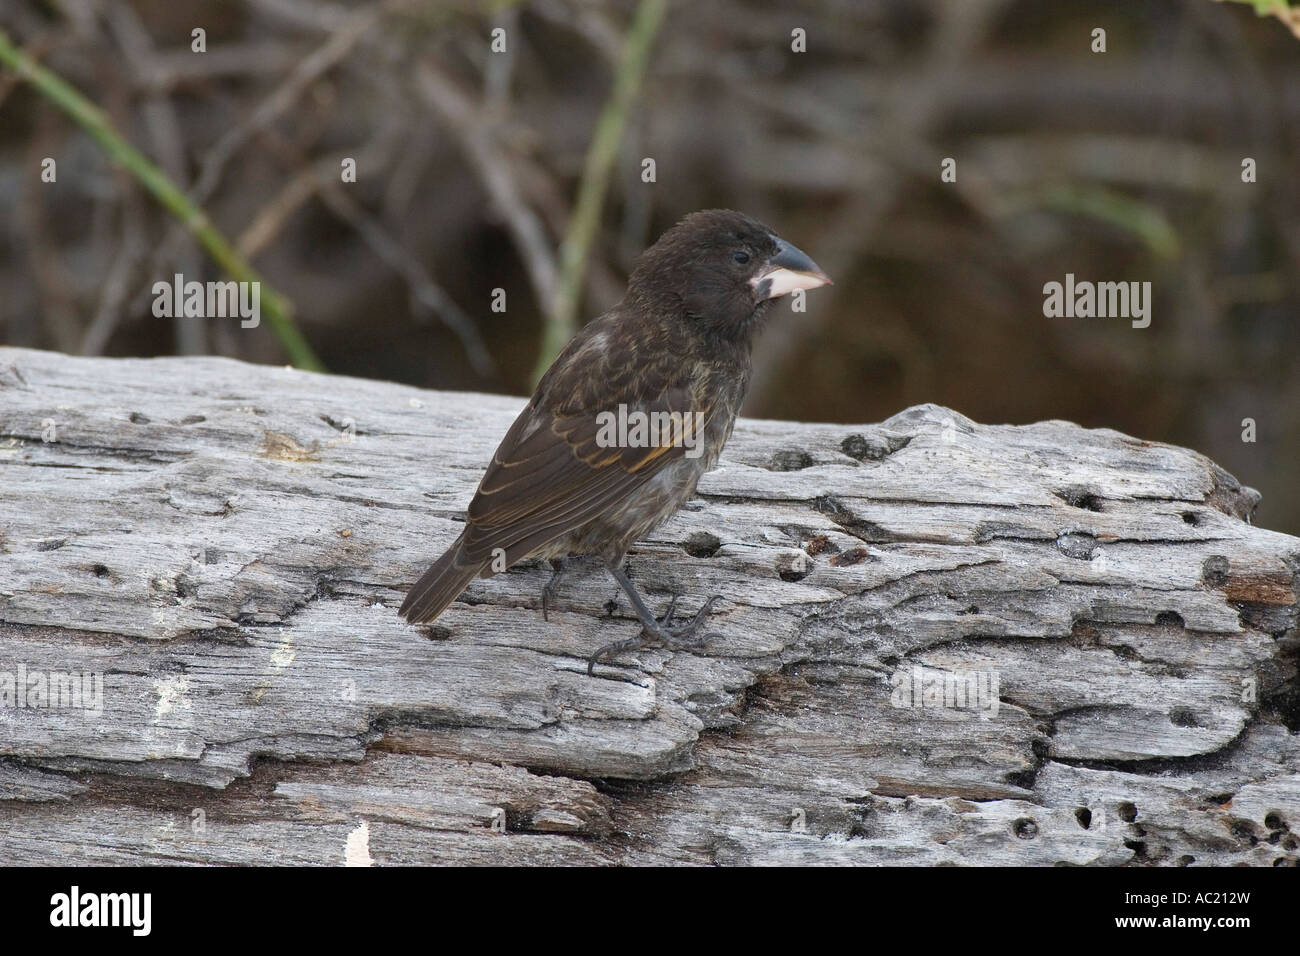 Large cactus ground finch on Espanola in the galapgos islands - Stock Image